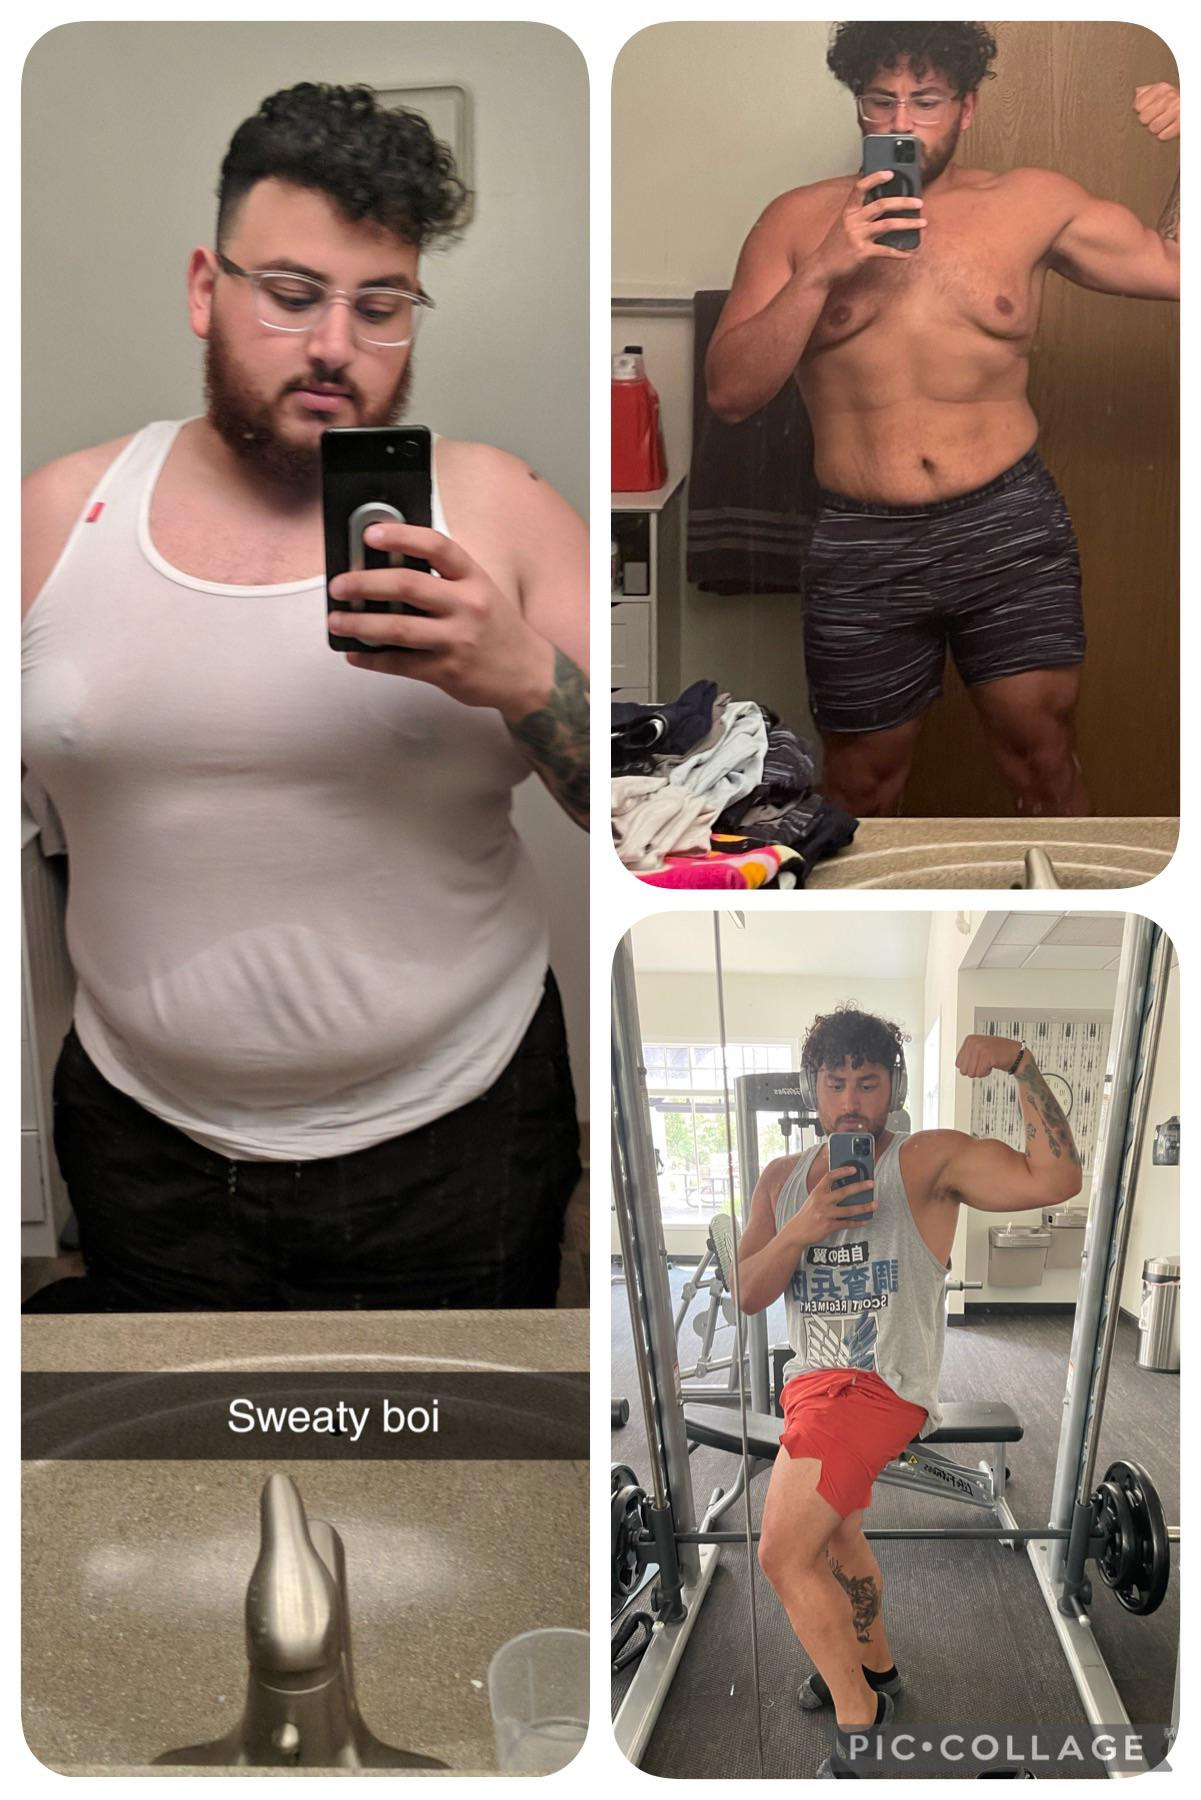 5'7 Male Before and After 89 lbs Weight Loss 310 lbs to 221 lbs